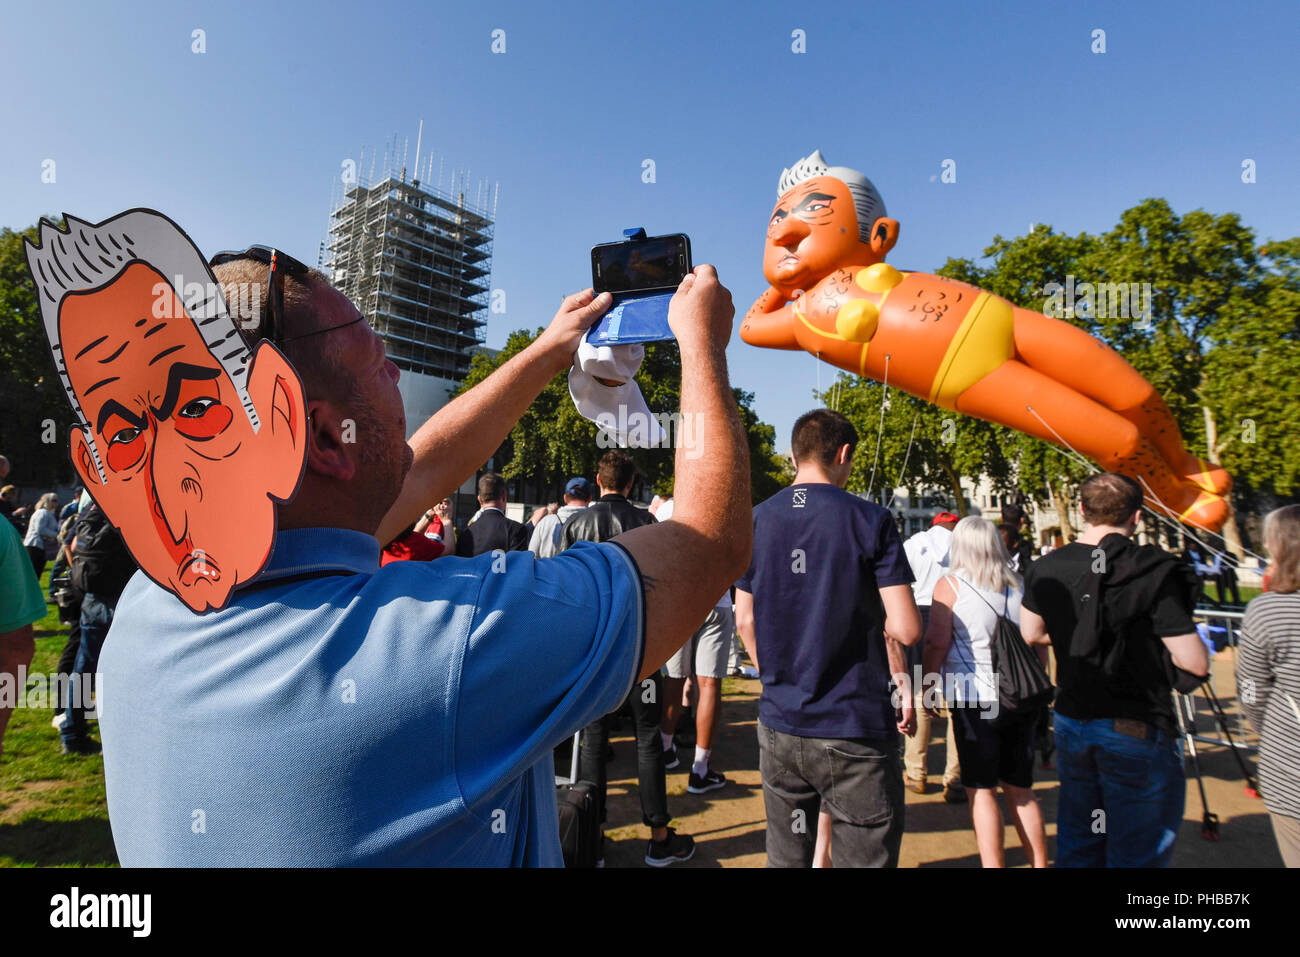 London, UK.  1 September 2018.  A 29 foot giant balloon depicting Sadiq Khan, Mayor of London, wearing a yellow bikini, flies over Parliament Square.  Activist Yanny Bruere raised £58,000 to fly the balloon in protest at the Mayor's decision to allow a giant balloon of Donald Trump as a baby to be flown during his visit to the UK.  The Sadiq Khan balloon is part of Buere's 'Make London Safe Again' campaign, a reference to a surge in violent crime in London and Mr Trump's slogan 'Make America Safe Again'. Credit: Stephen Chung / Alamy Live News - Stock Image